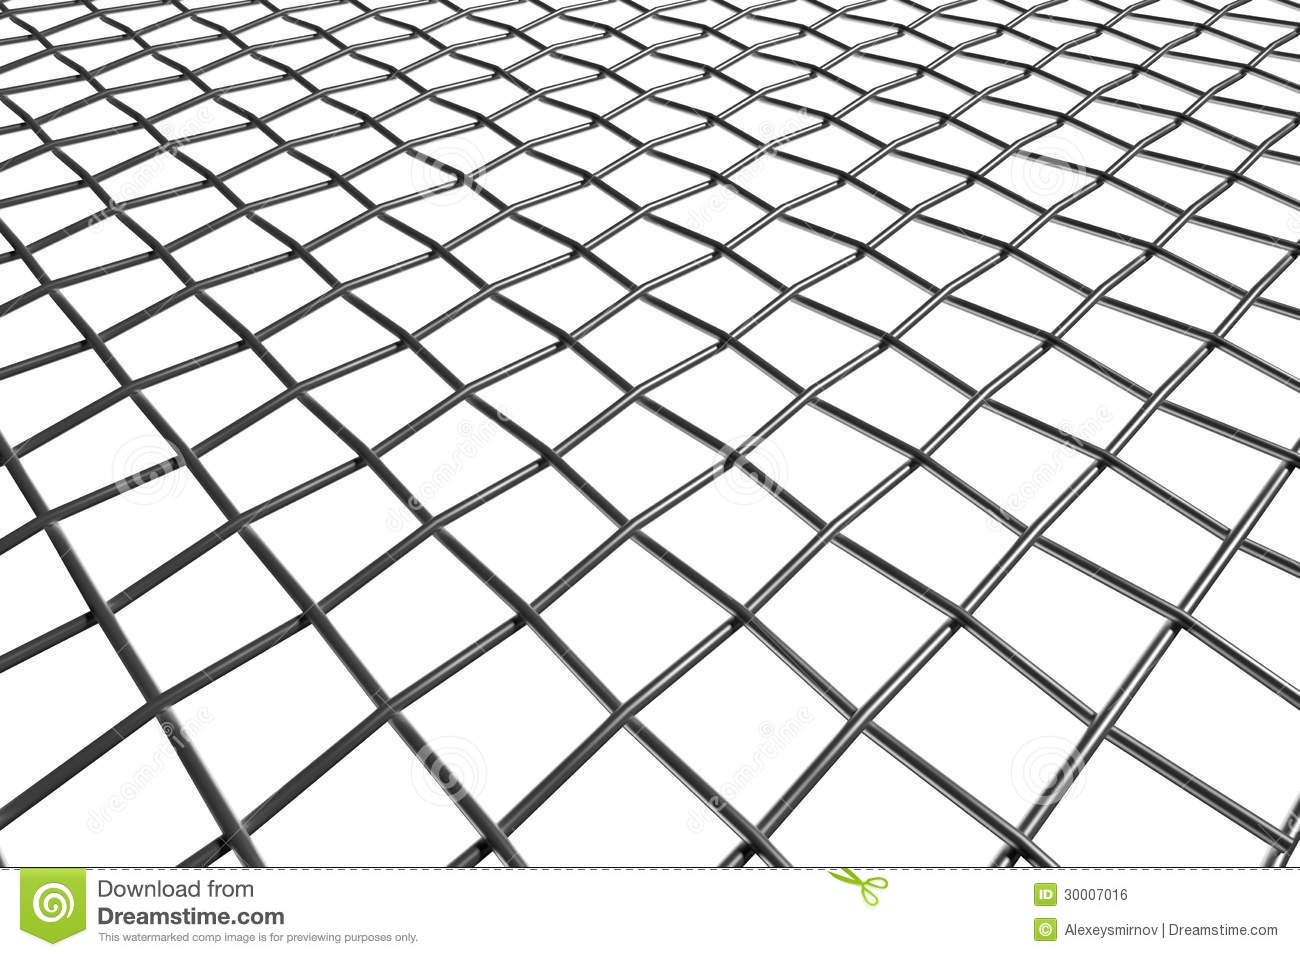 Braided Wire Steel Net In Perspective View Royalty Free